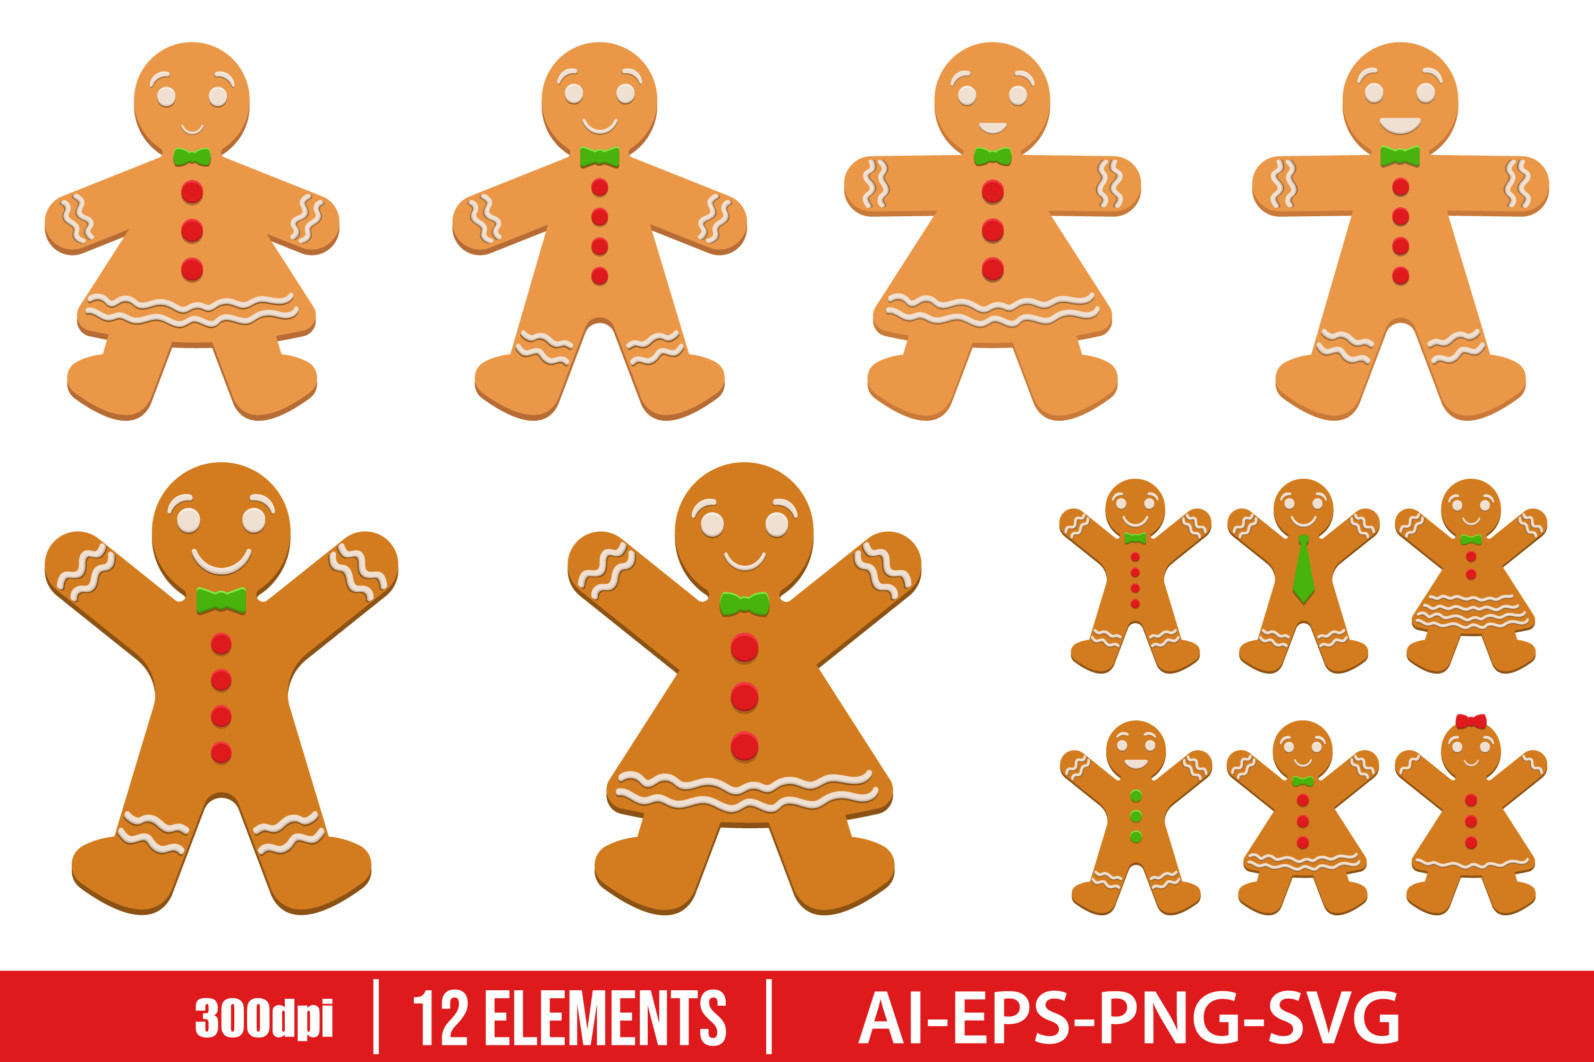 Gingerbread man clipart vector design illustration. Gingerbread man set. Vector Clipart Print - GINGERBREAD MAN scaled -